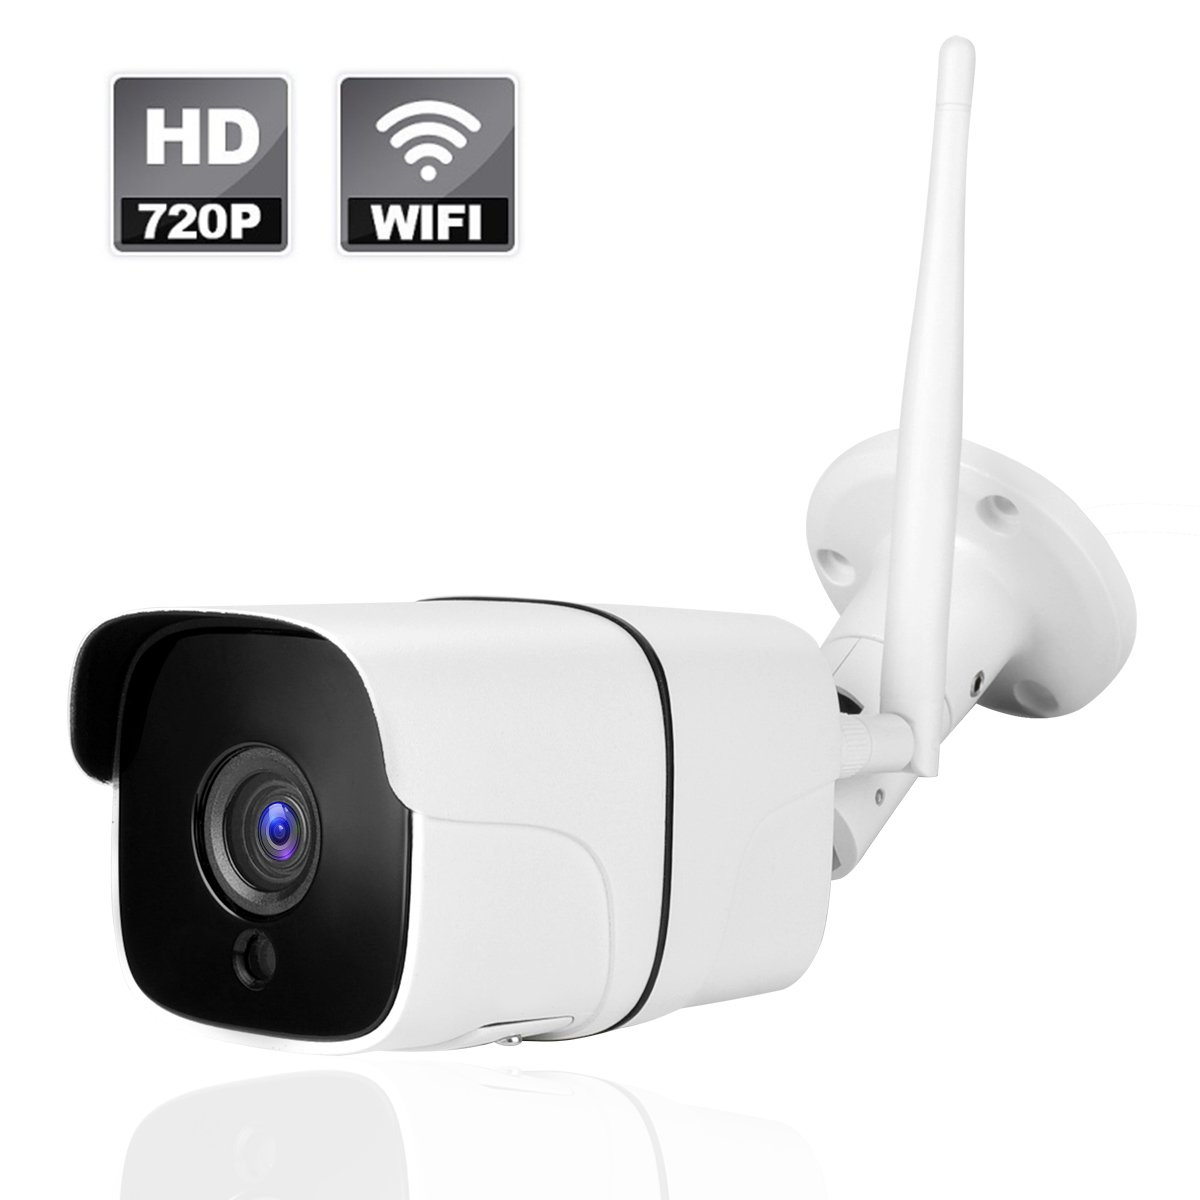 Wireless WIFI Outdoor IP Security Camera with Night Vision Up to 65ft Motion Detection Alarm/Recording, Support Max 64GB SD Card (external) AT-100BW